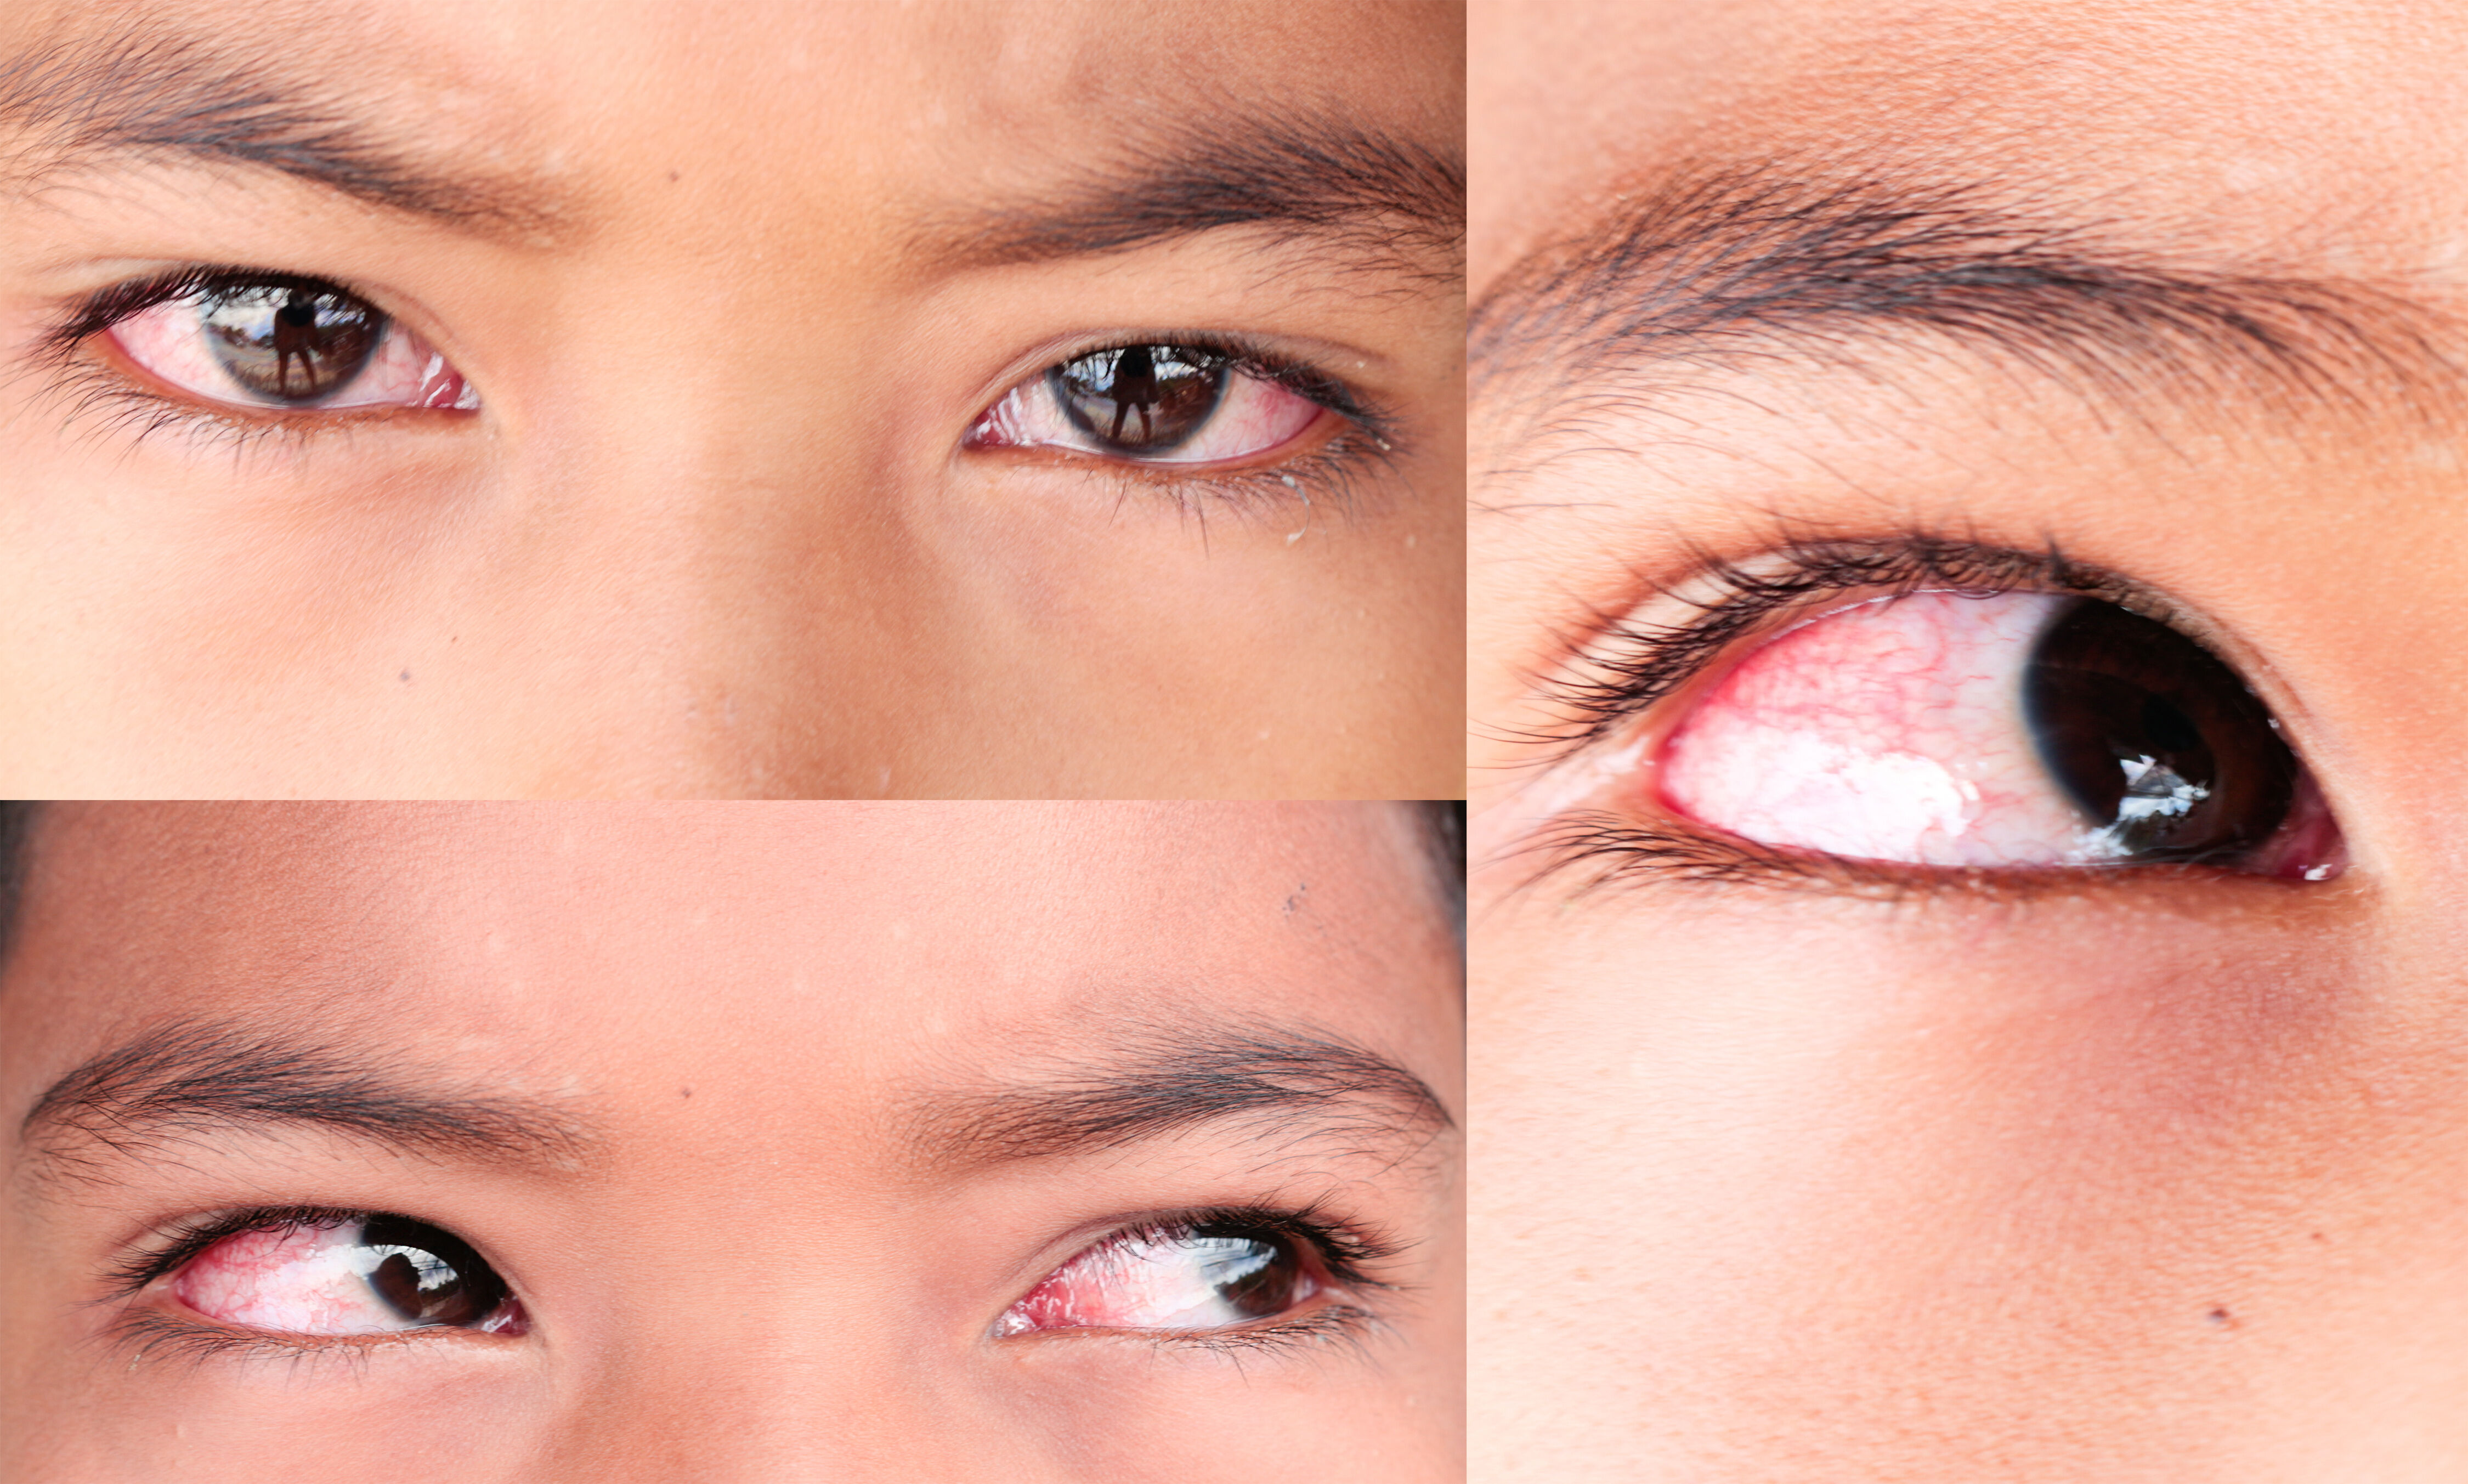 patients with ocular abnormalities